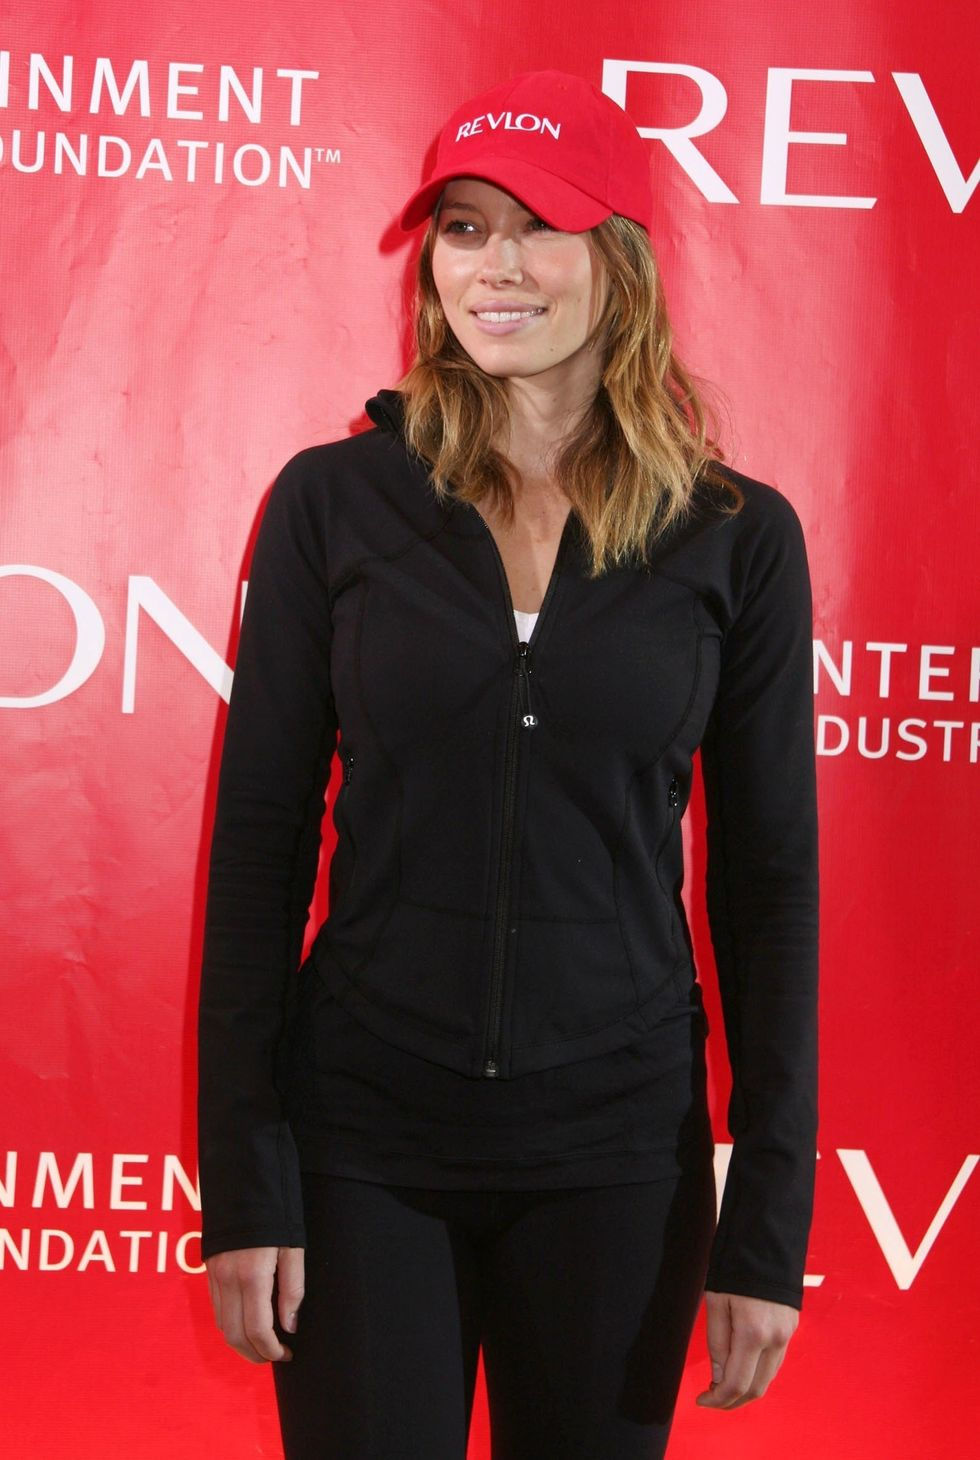 jessica-biel-12th-annual-eif-revlon-runwalk-for-women-01